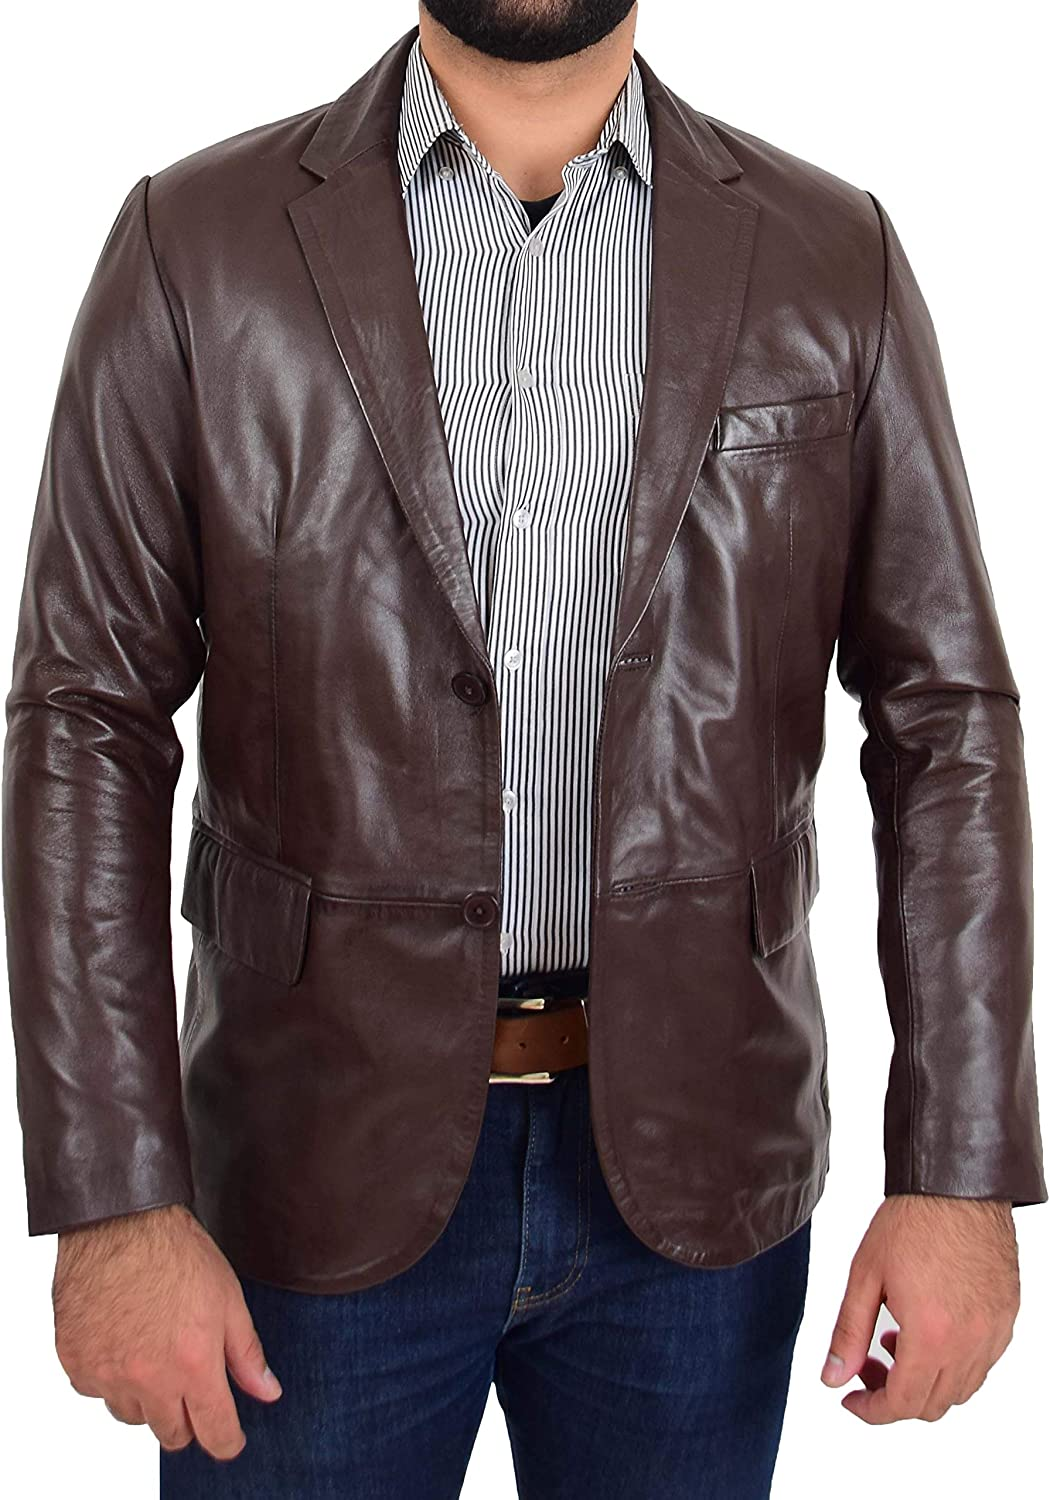 Mens Brown Leather Blazer Jacket Fitted Cut 2 Button Coat Donnie